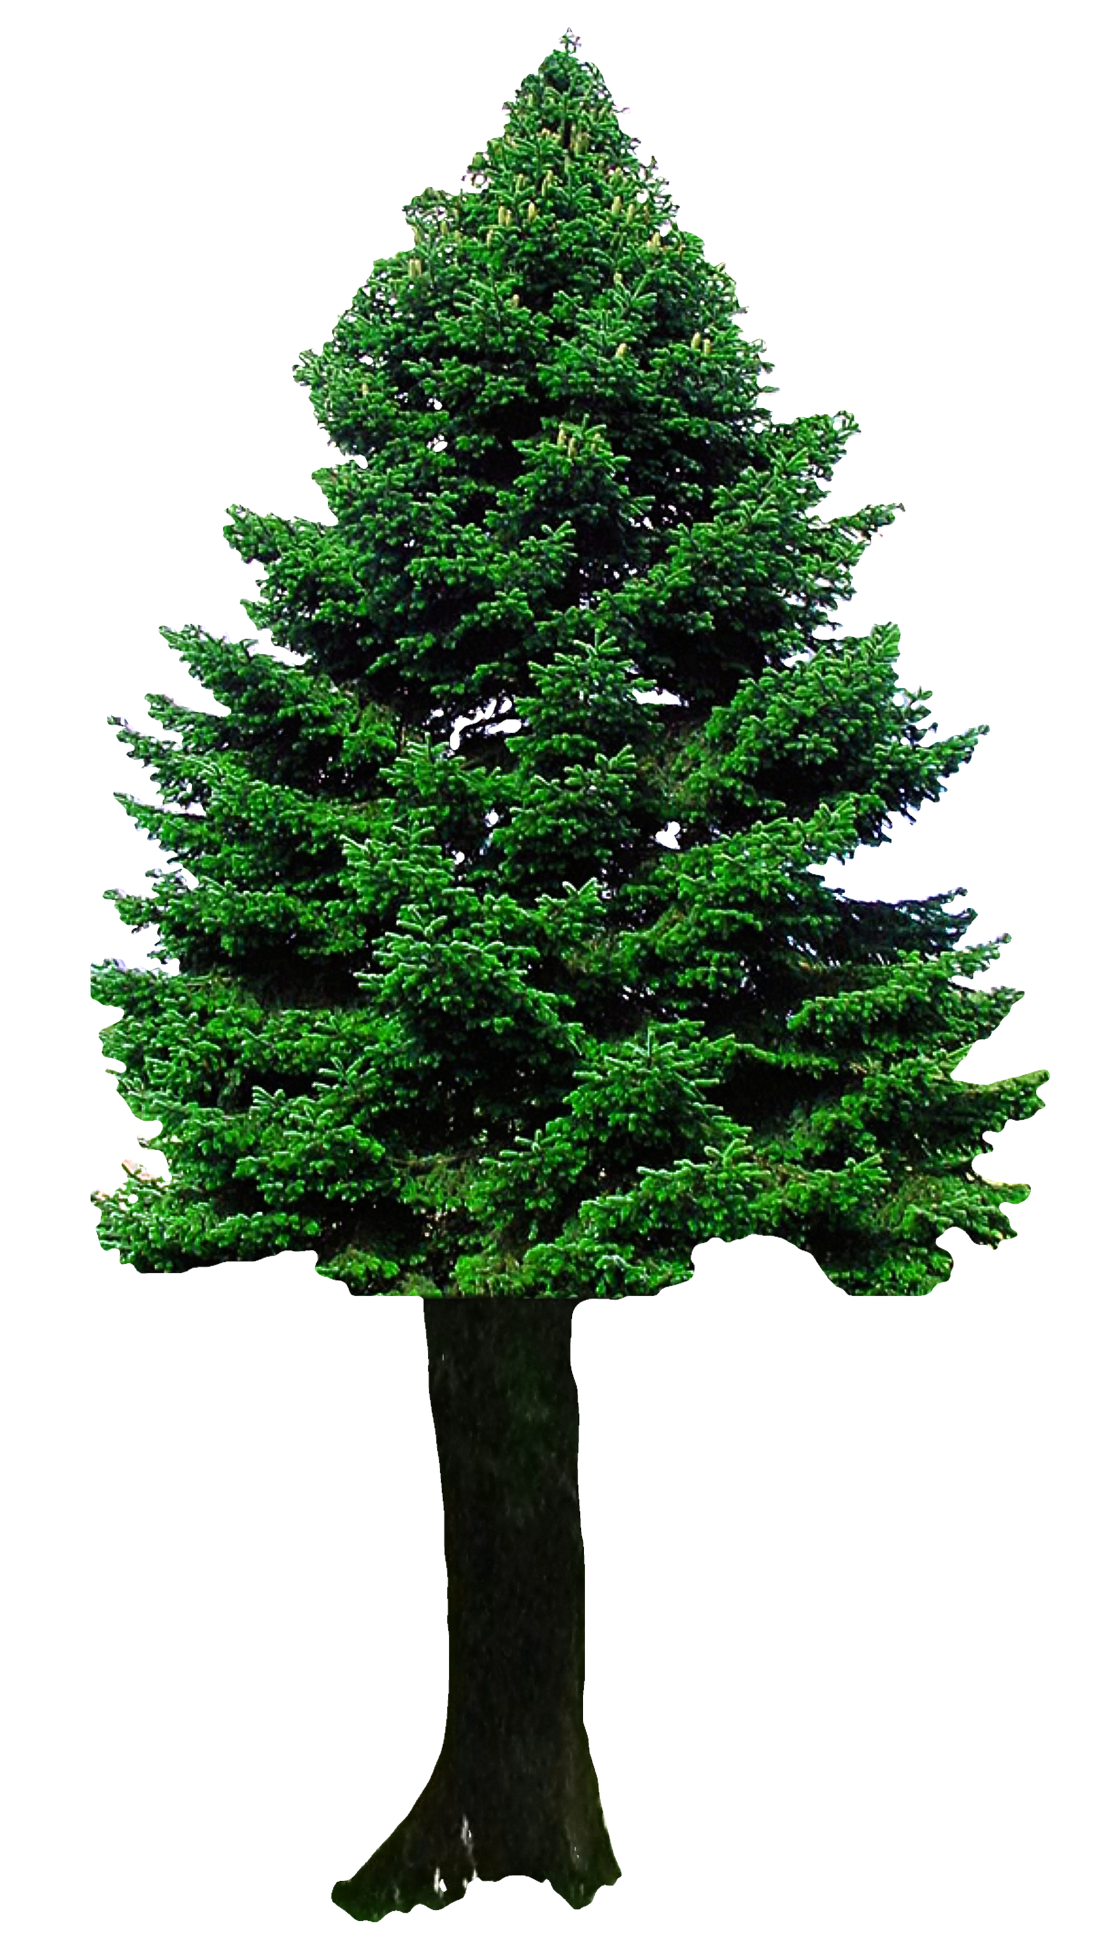 Christmas Tree Png Image Purepng Free Transparent Cc0 Png Image